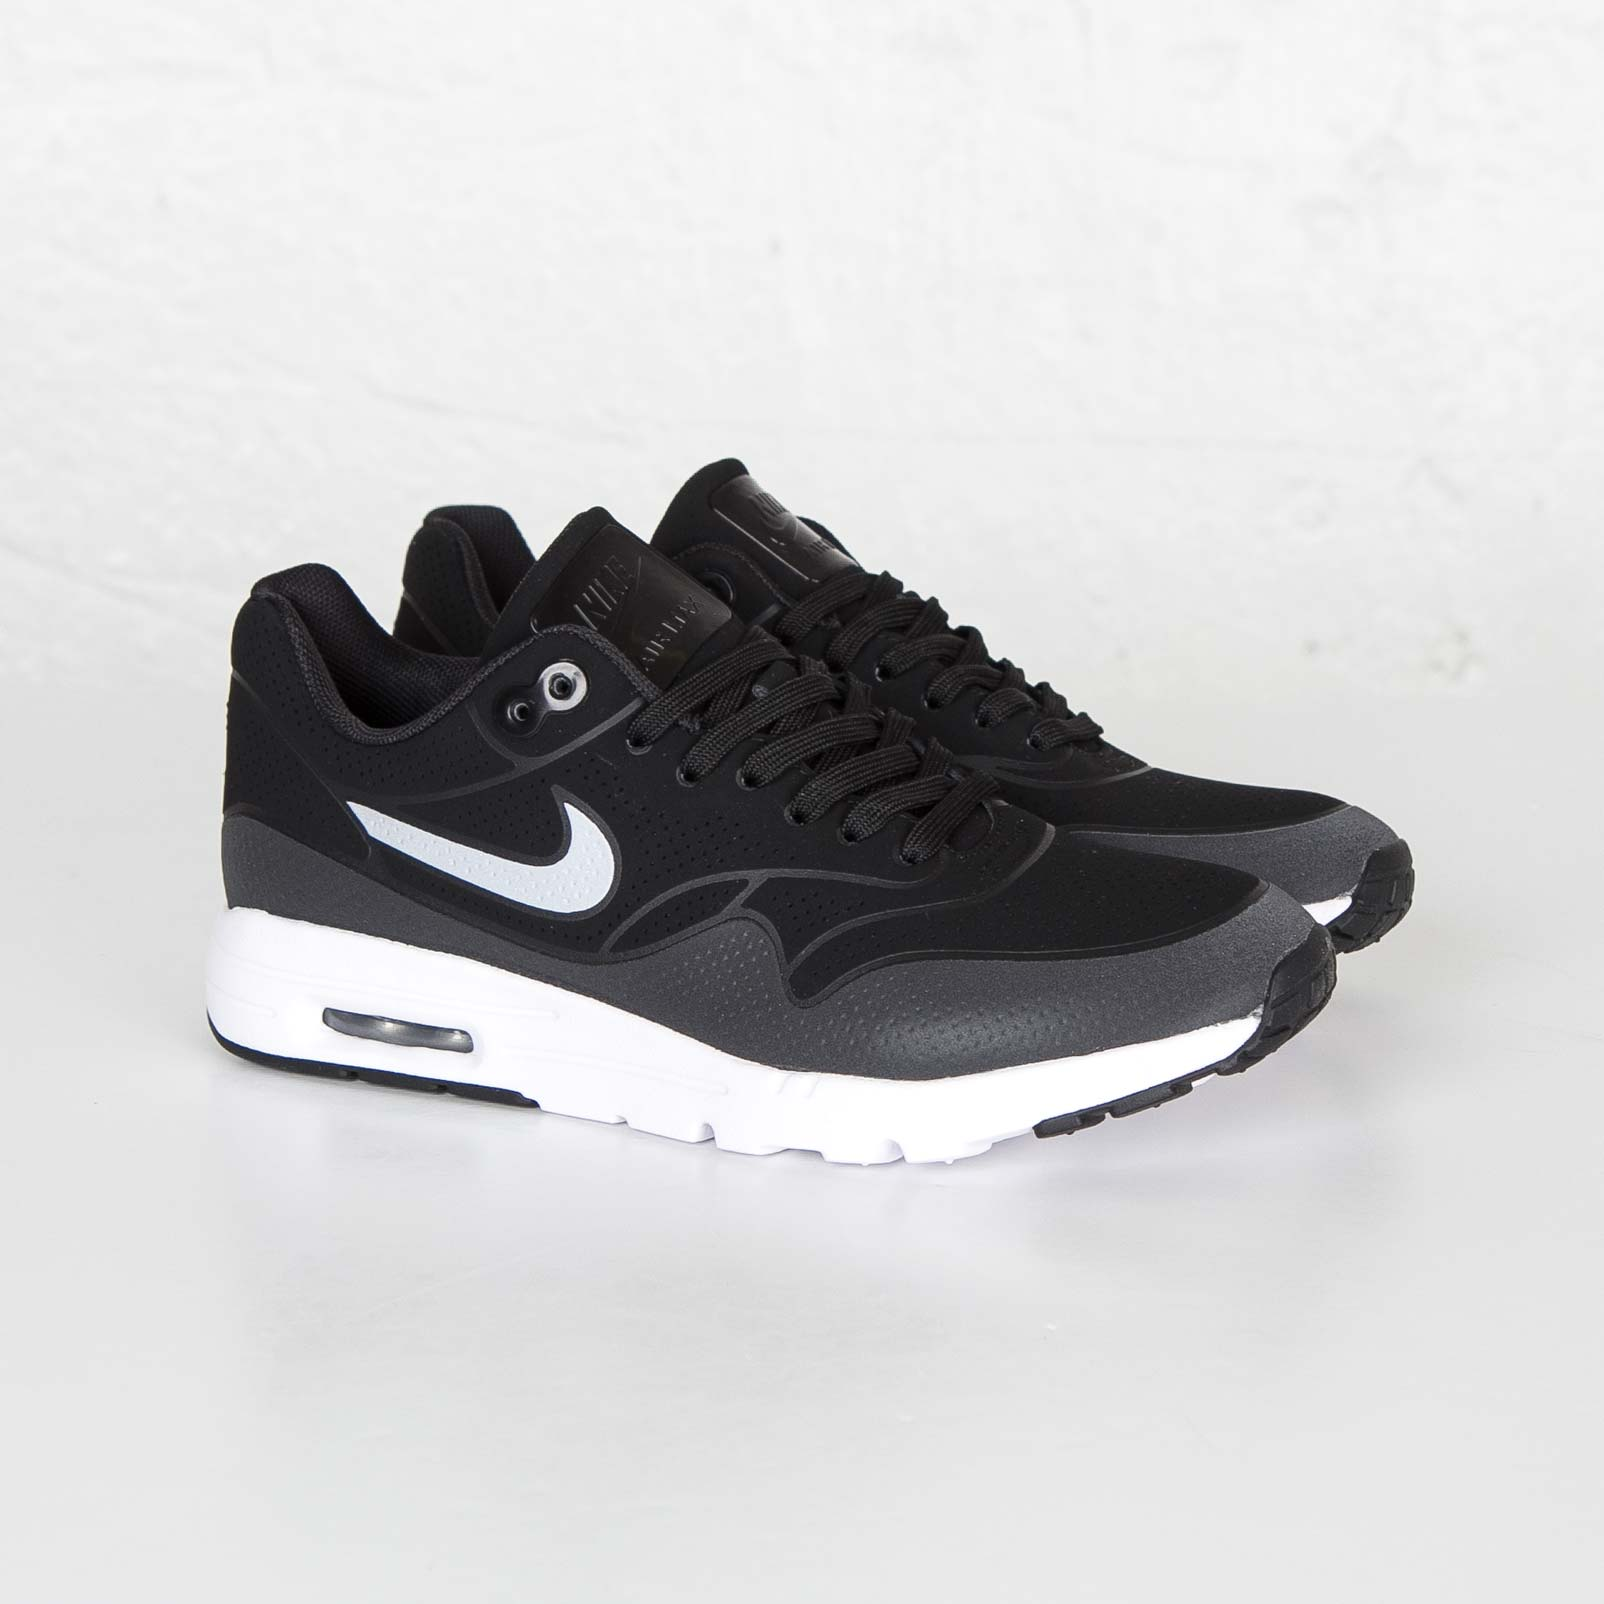 low priced a06d4 abe34 nike womens air max 1 ultra moire. Nike Wmns Air Max 1 Ultra Moire Color   Black Black-Metallic Silver-White